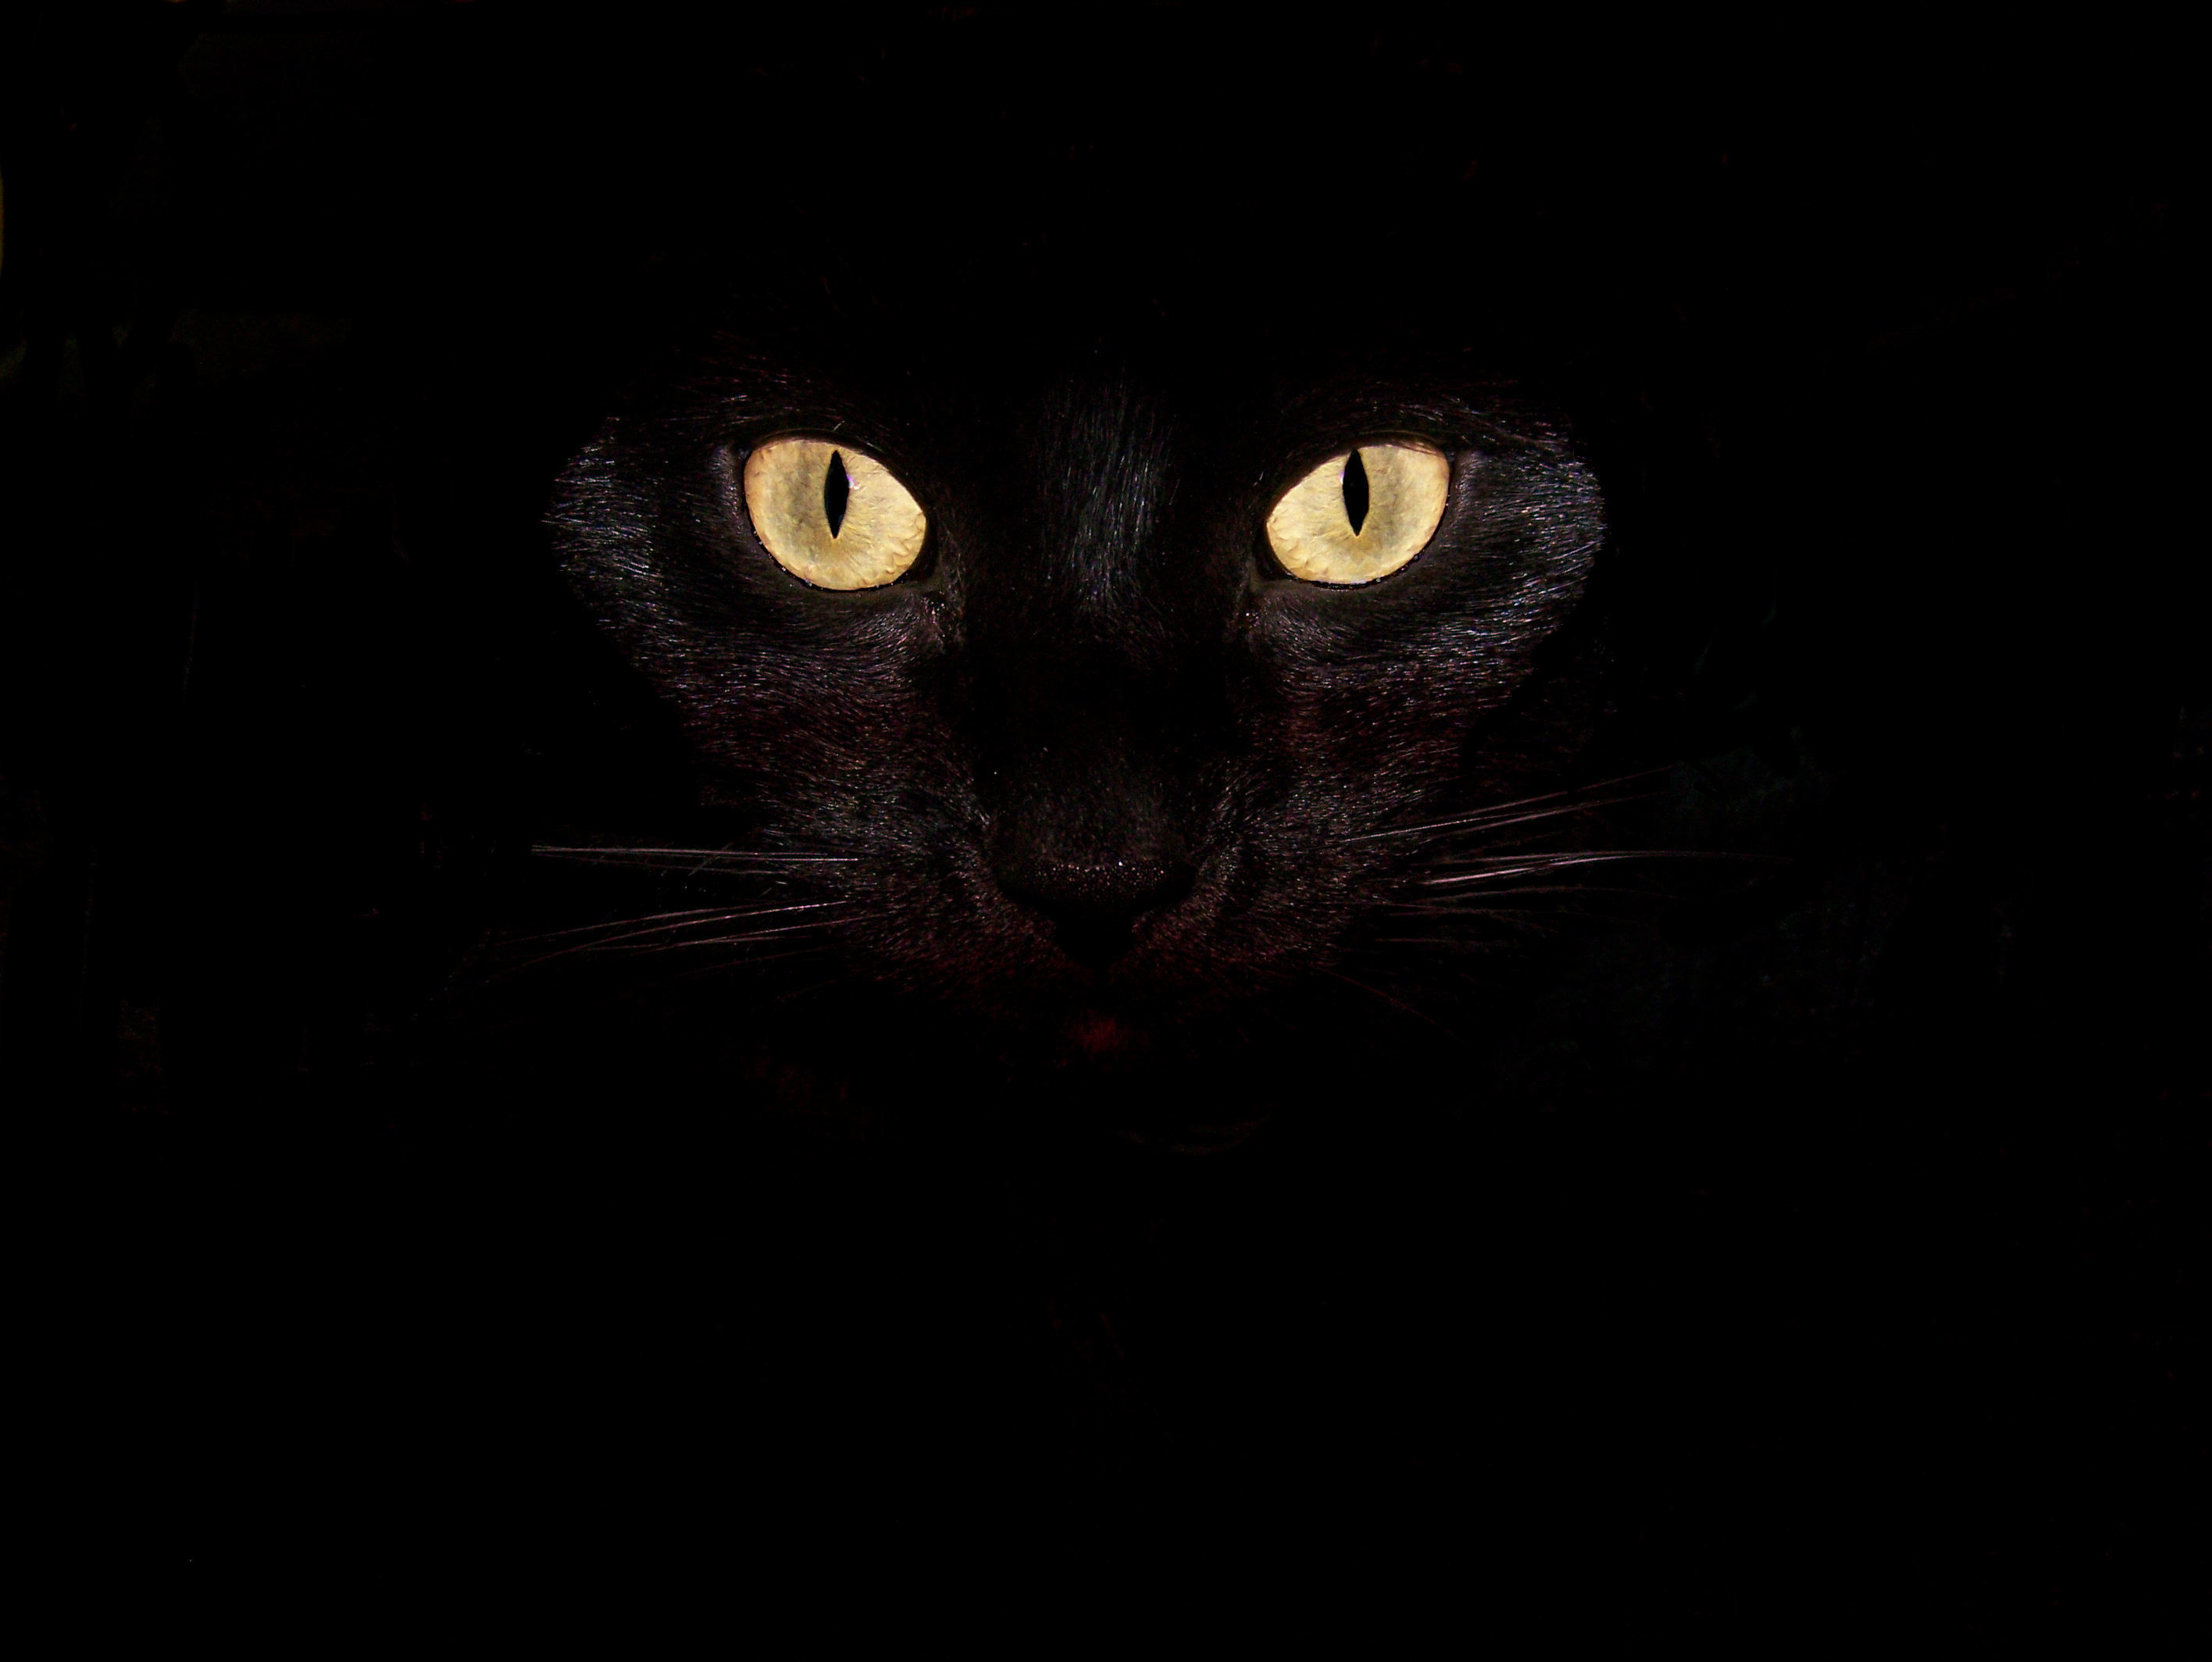 Paganism Images Black Cat HD Wallpaper And Background Photos